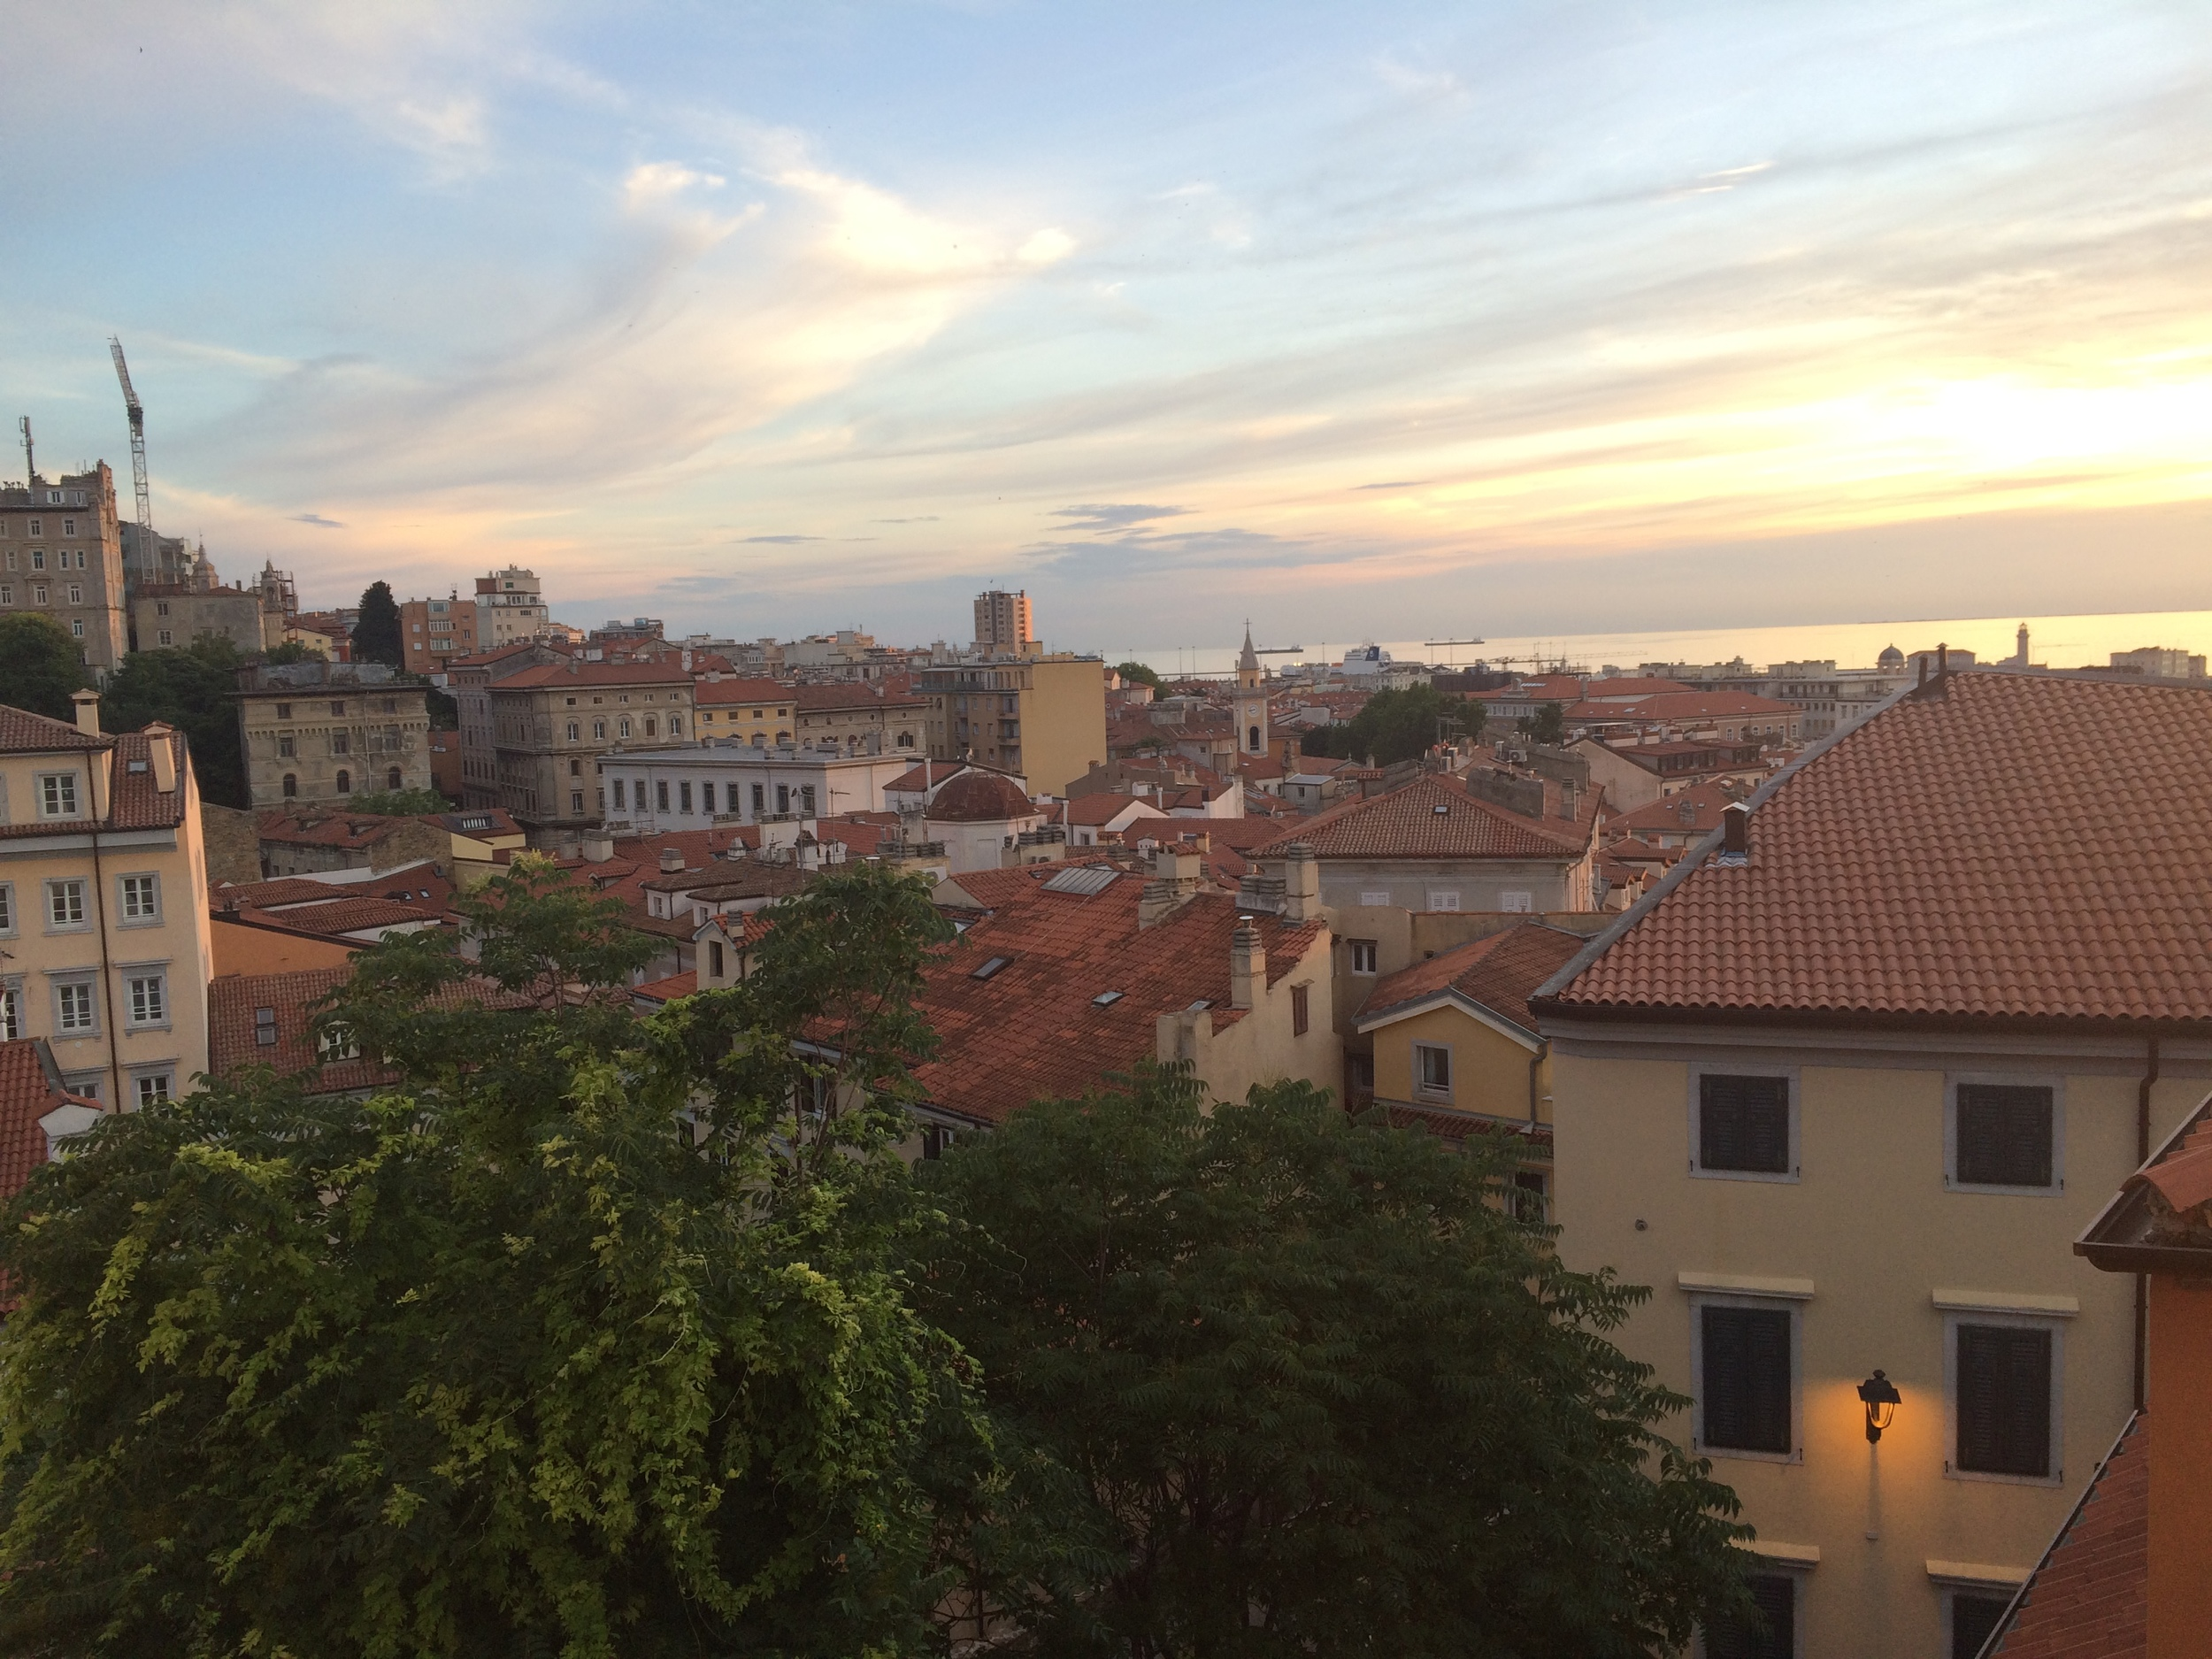 View from our bedroom in Trieste, Italy